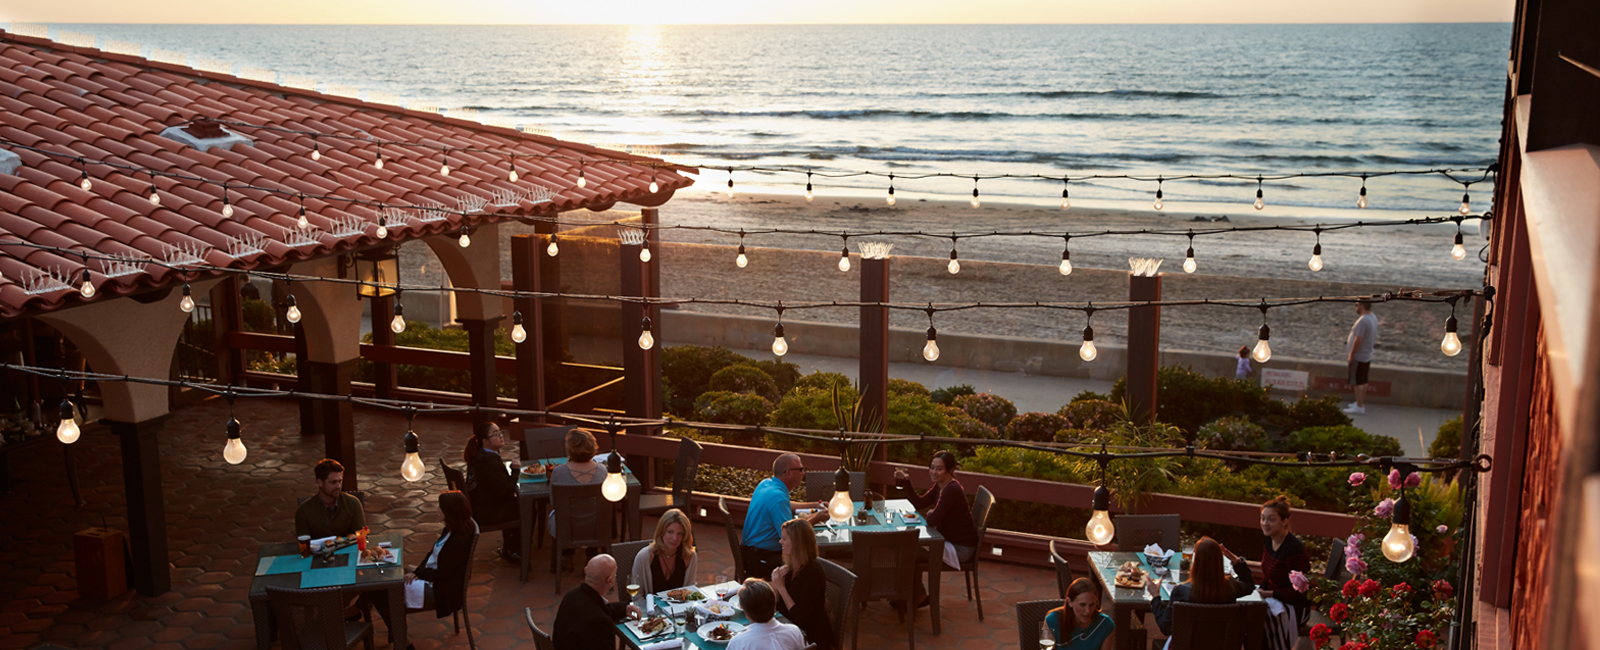 The Shores Restaurant in La Jolla